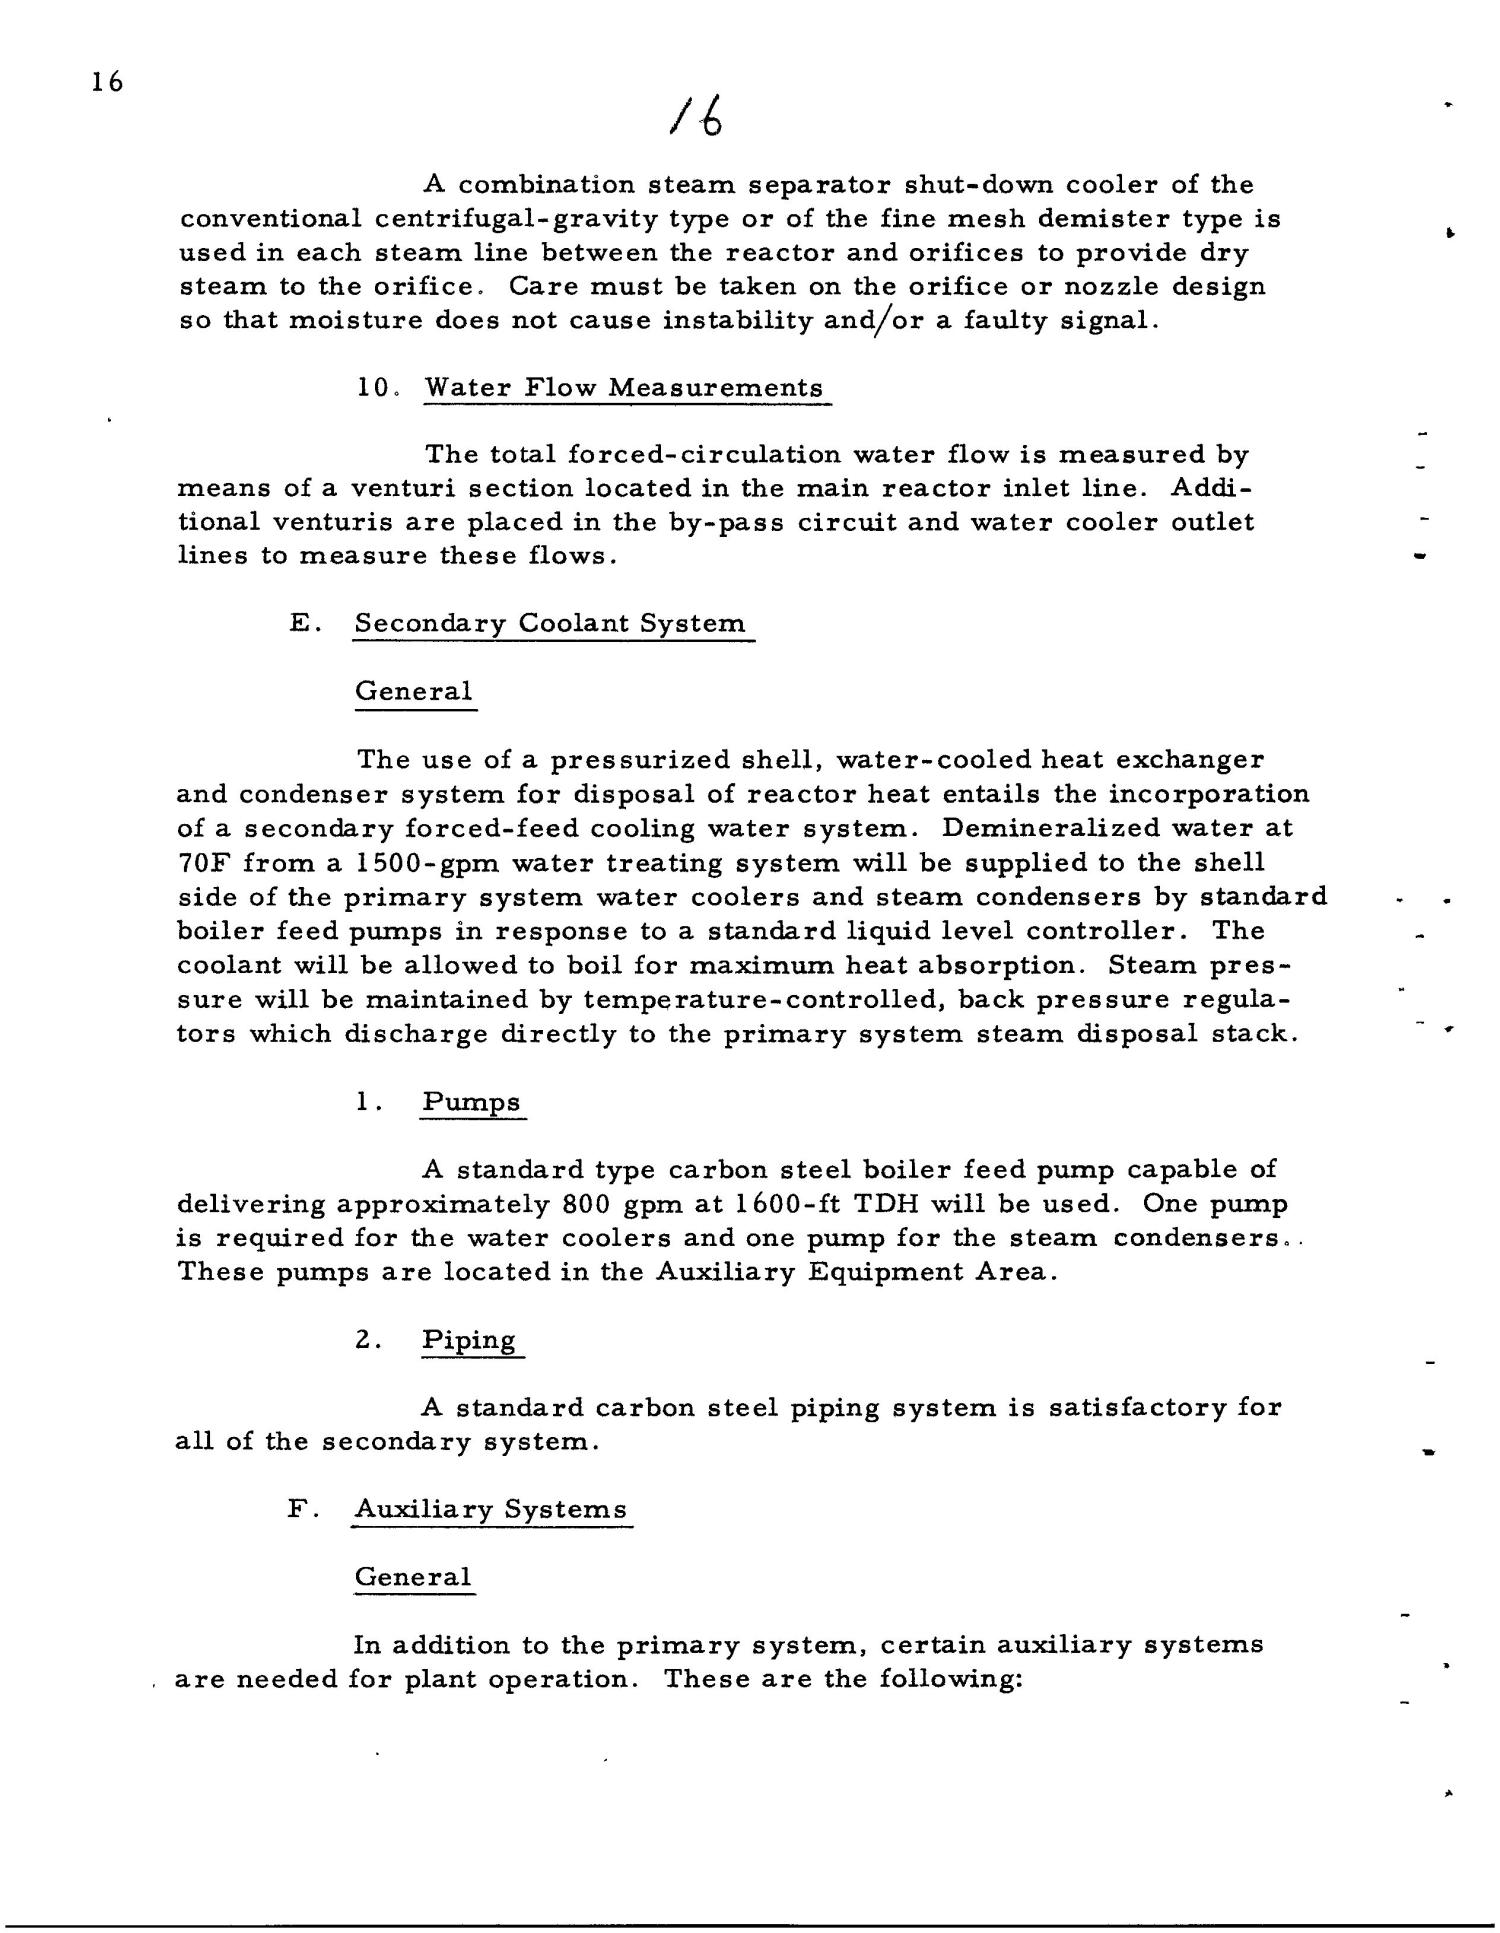 PRELIMINARY DESIGN REQUIREMENTS ARGONNE BOILING REACTOR (ARBOR) FACILITY. Revision I                                                                                                      [Sequence #]: 18 of 161